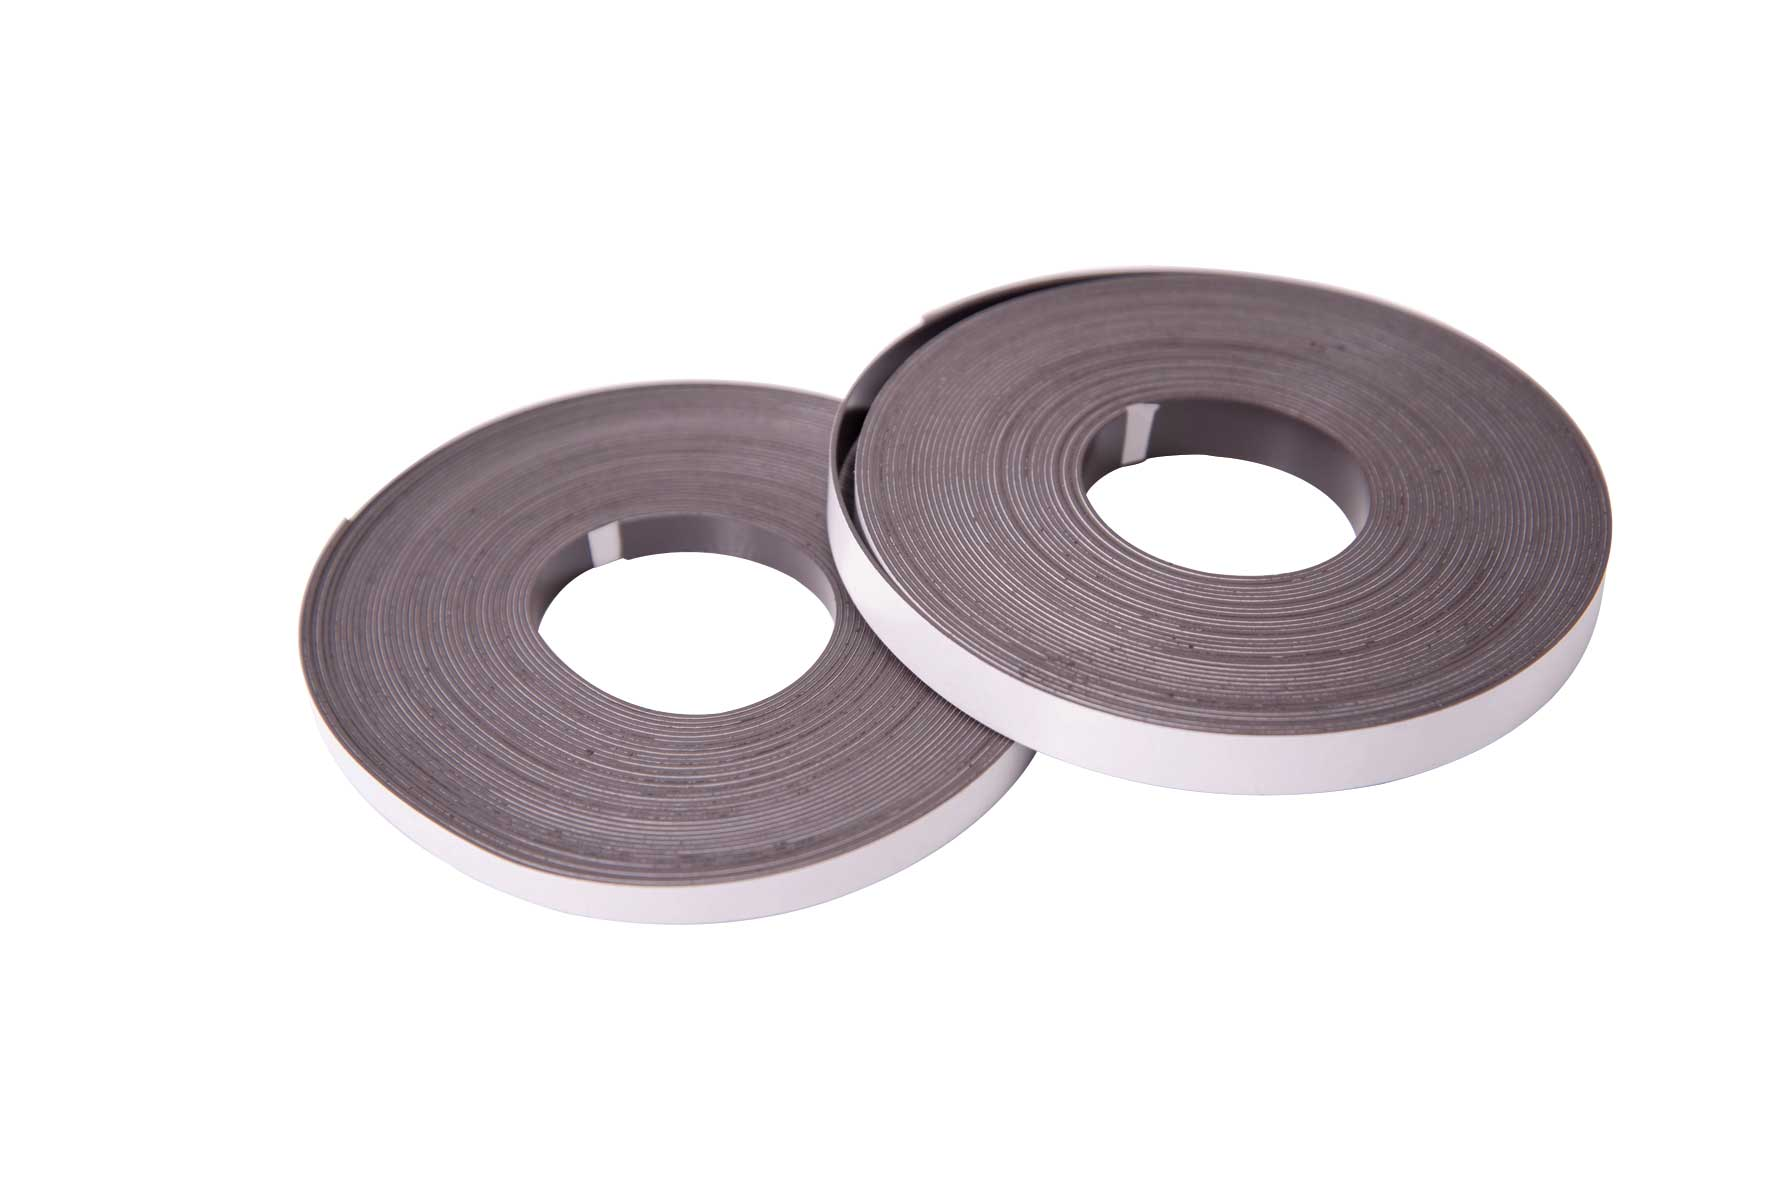 Magnetic Tape Adhesive Backed 0.8x12mm 10m